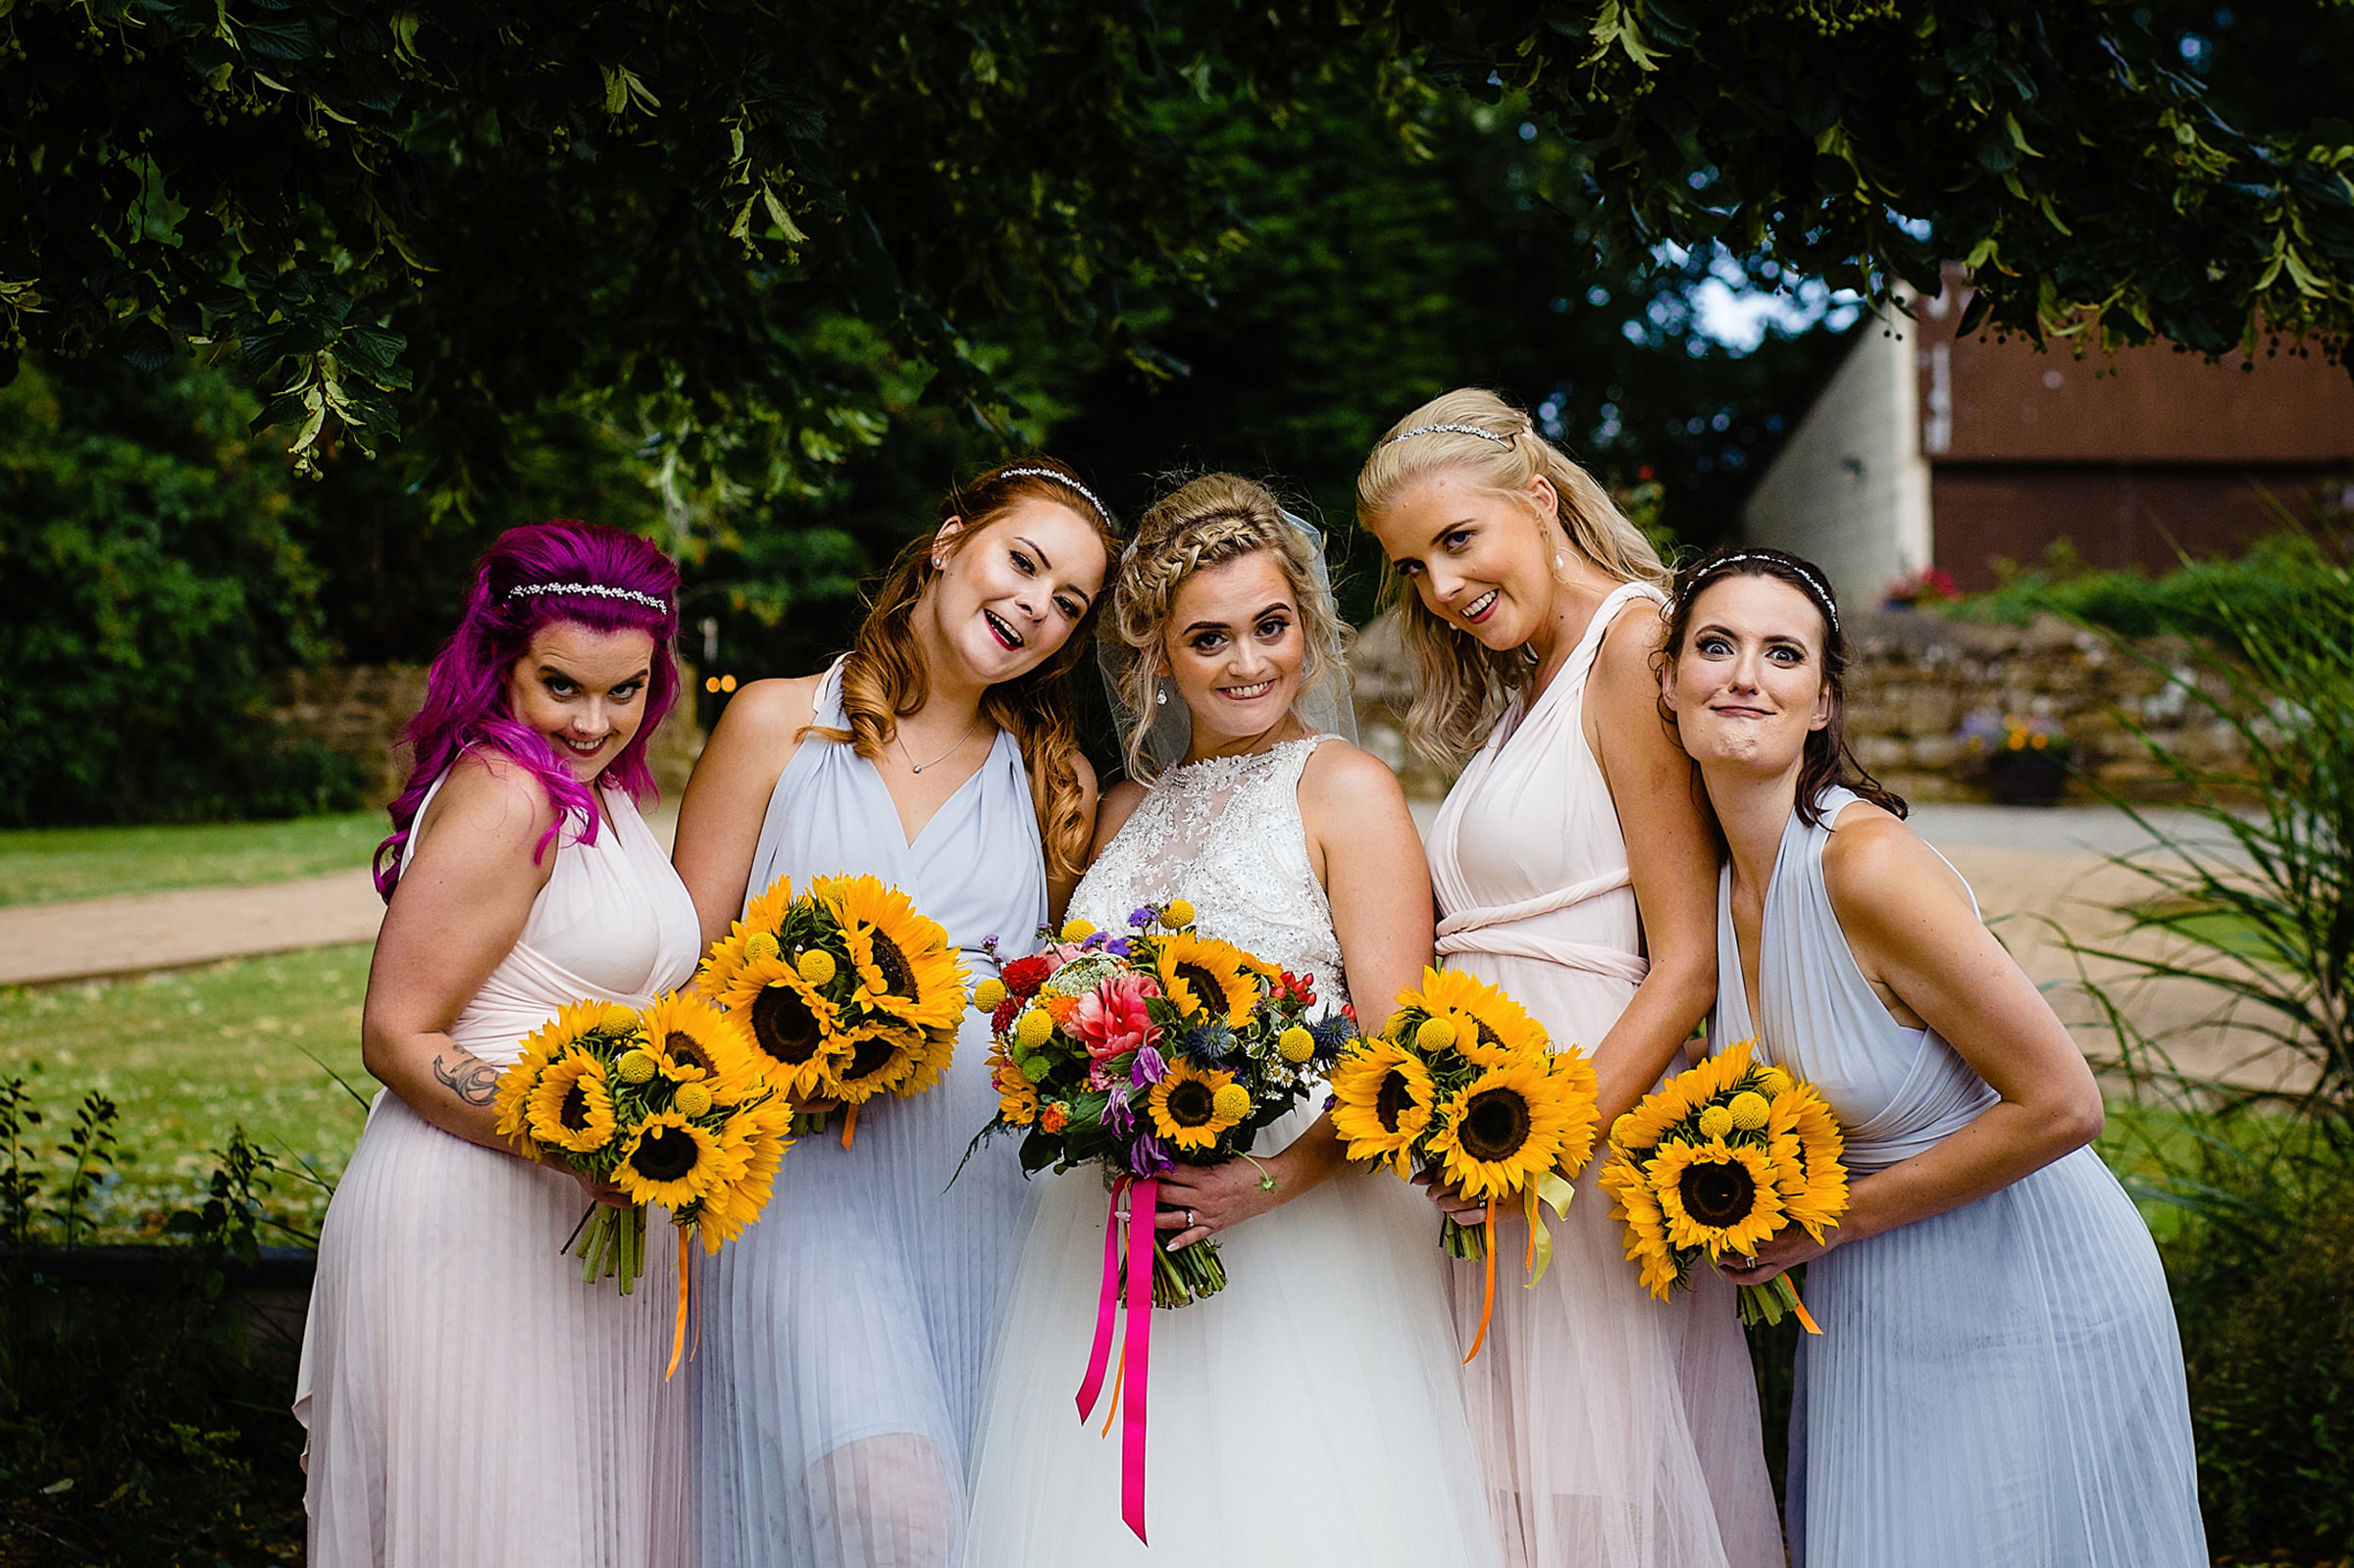 bridal-party-with-sunflower-bouquets-making-faces-for-the-camera-emma-rich